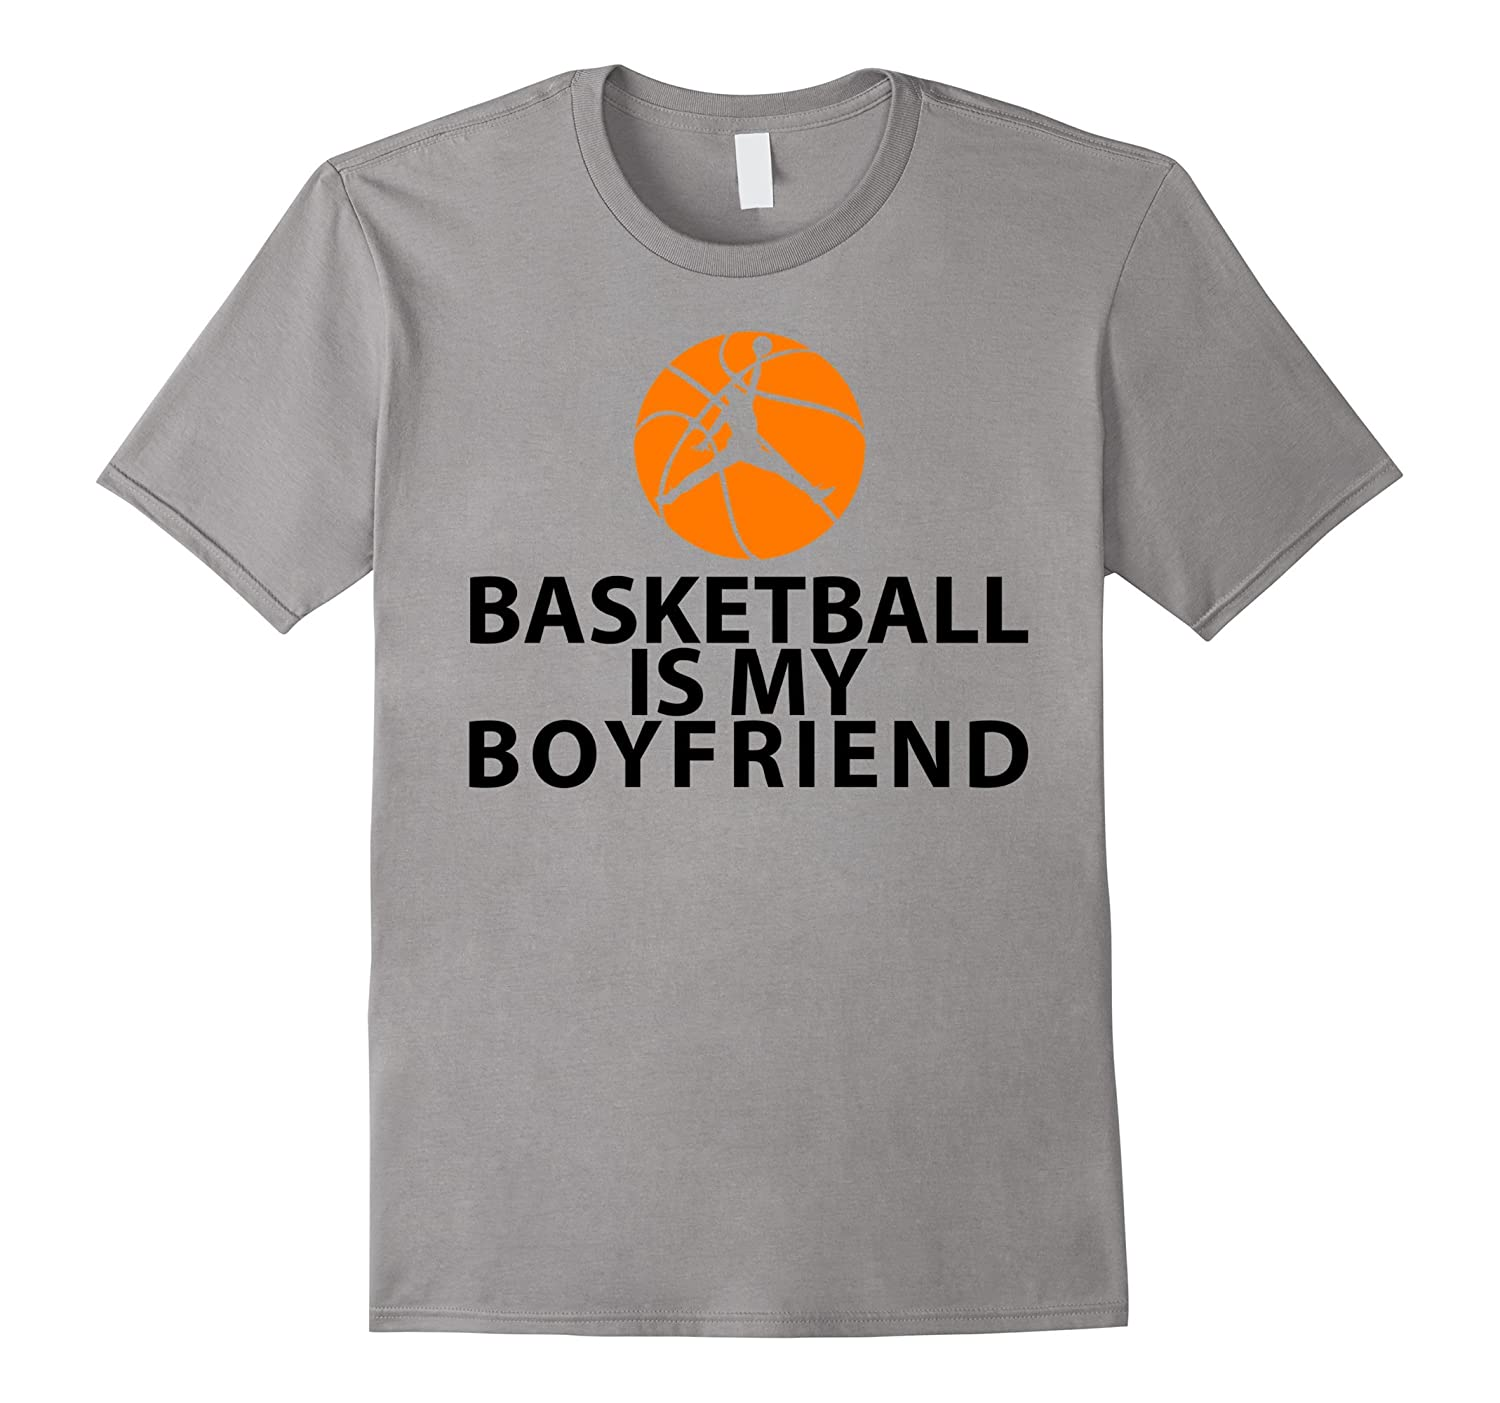 Basketball is my Boyfriend Shirt & Basketball with Saying-CL